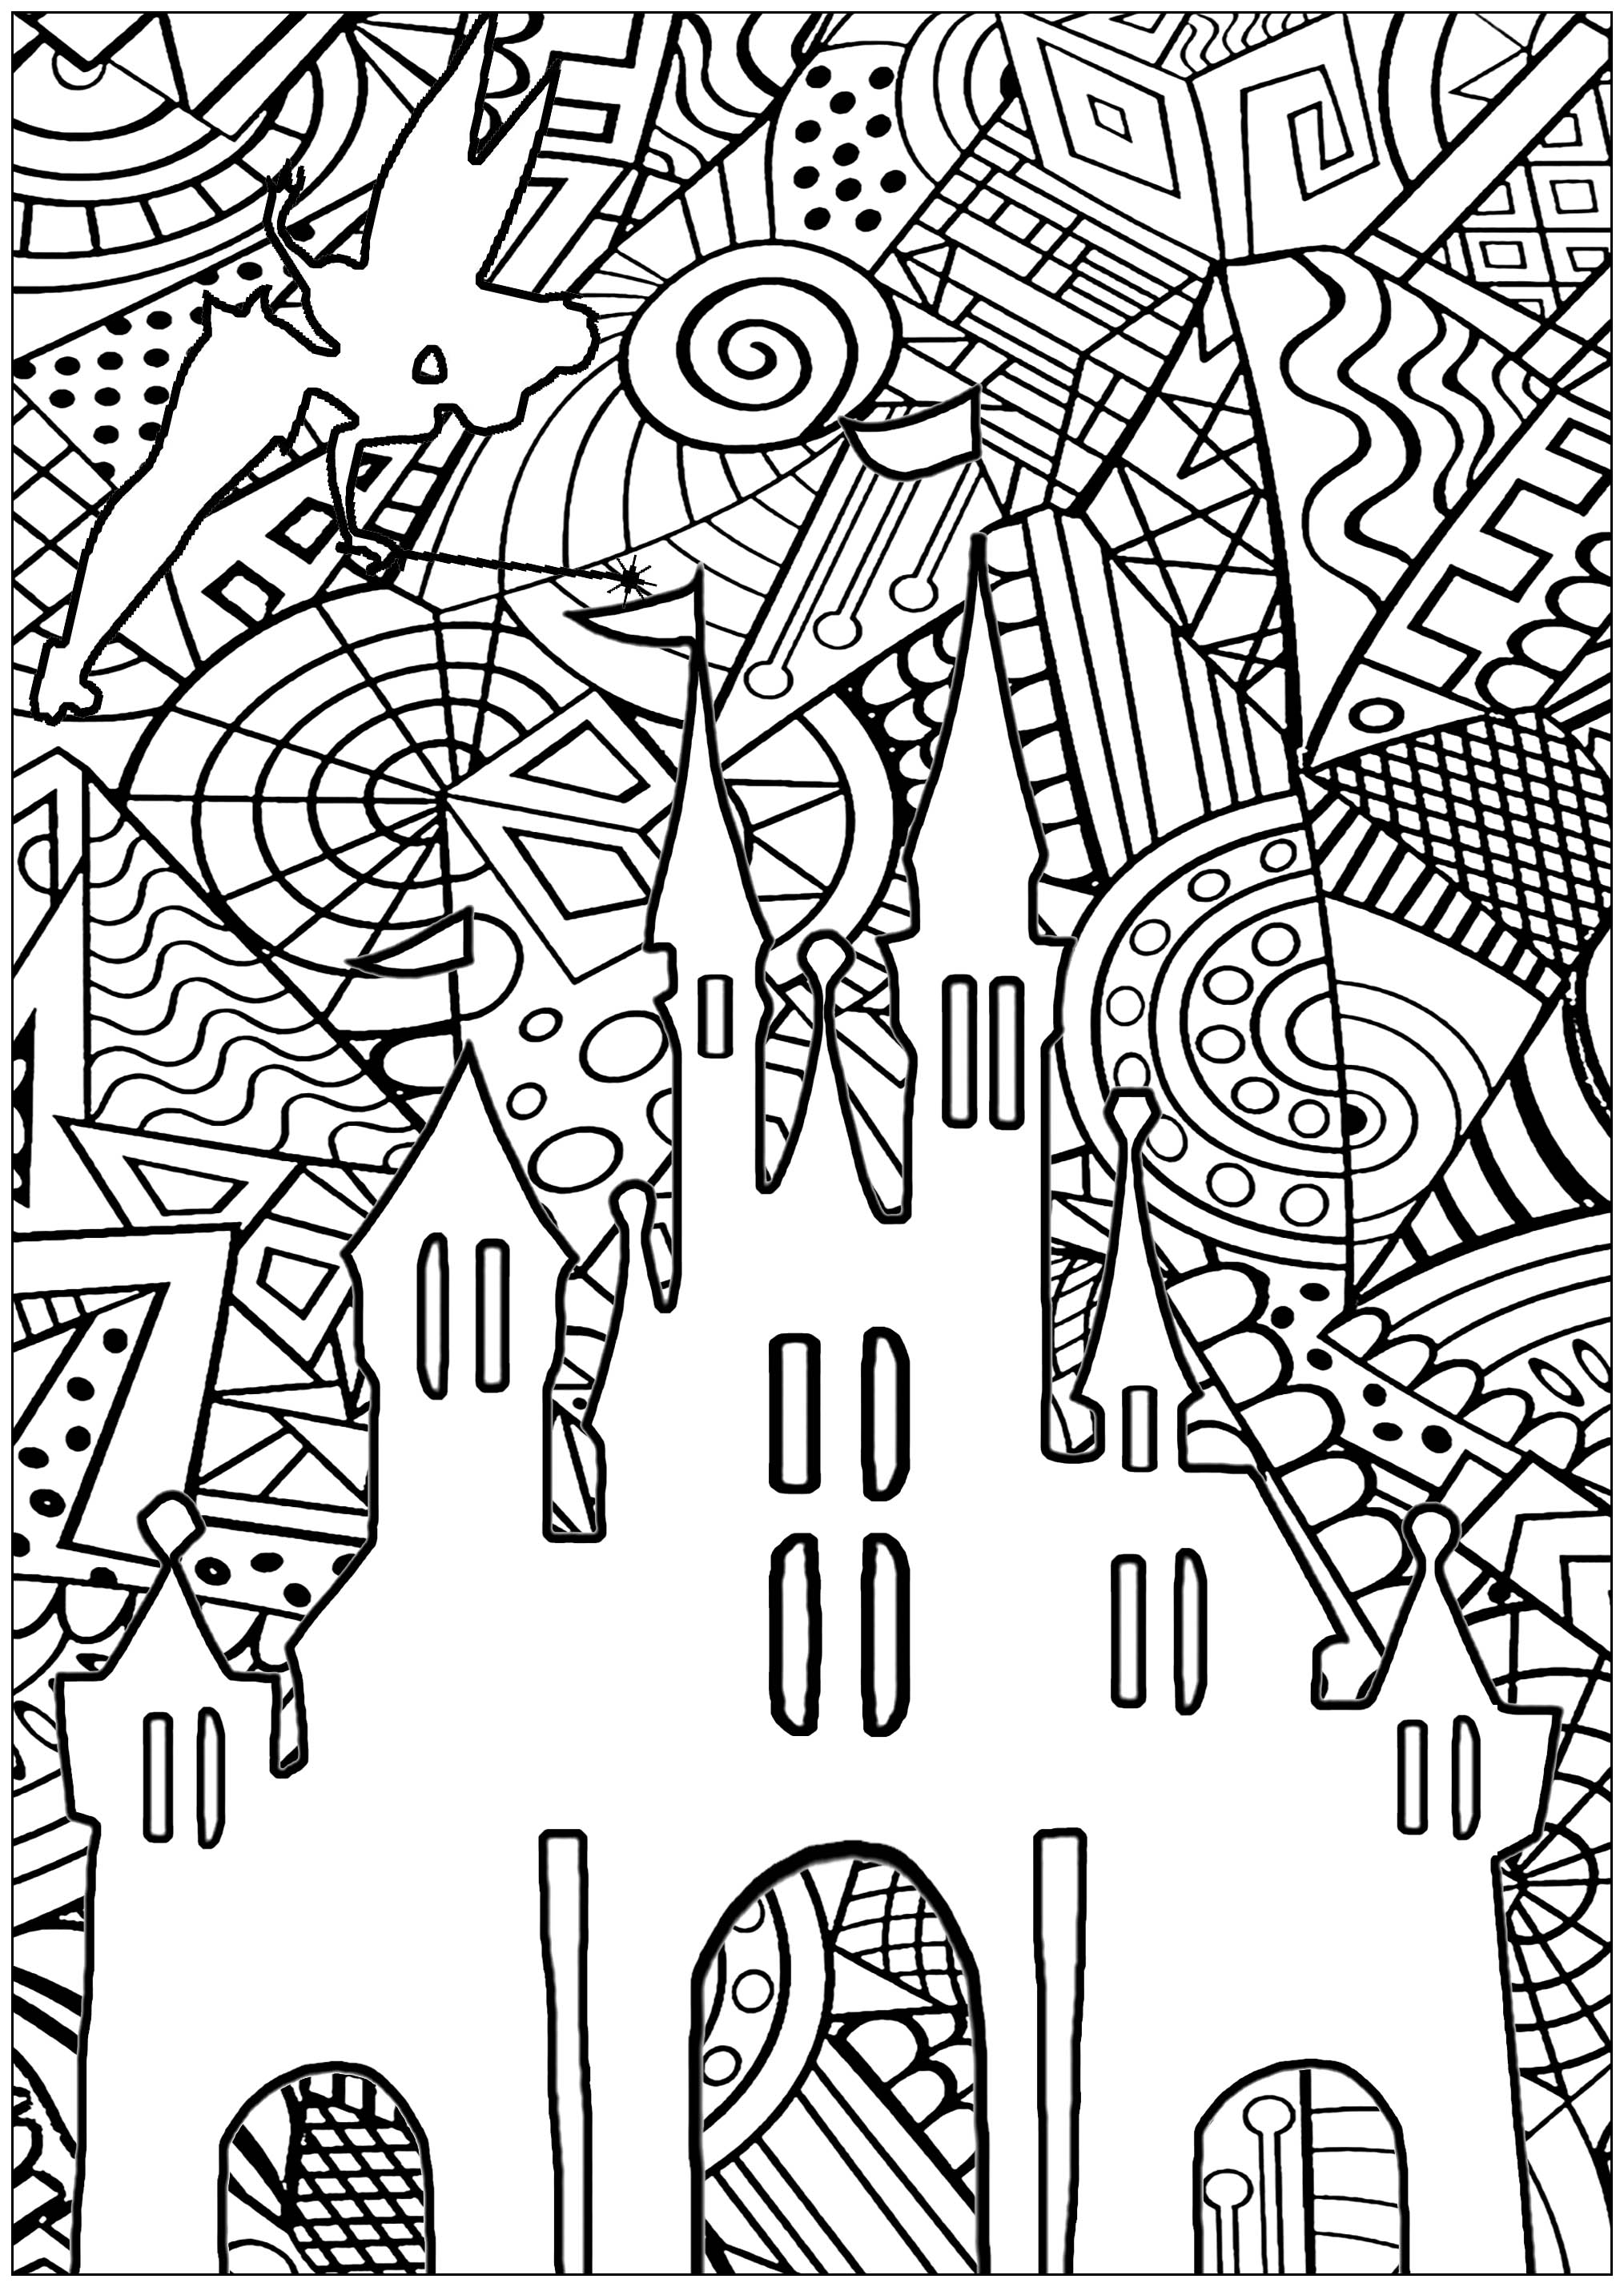 Coloring page inspired by the famous Cinderella Castle, the iconic symbol of The Walt Disney Company, and of Disney theme parks. Do you see Tinker Bell ?